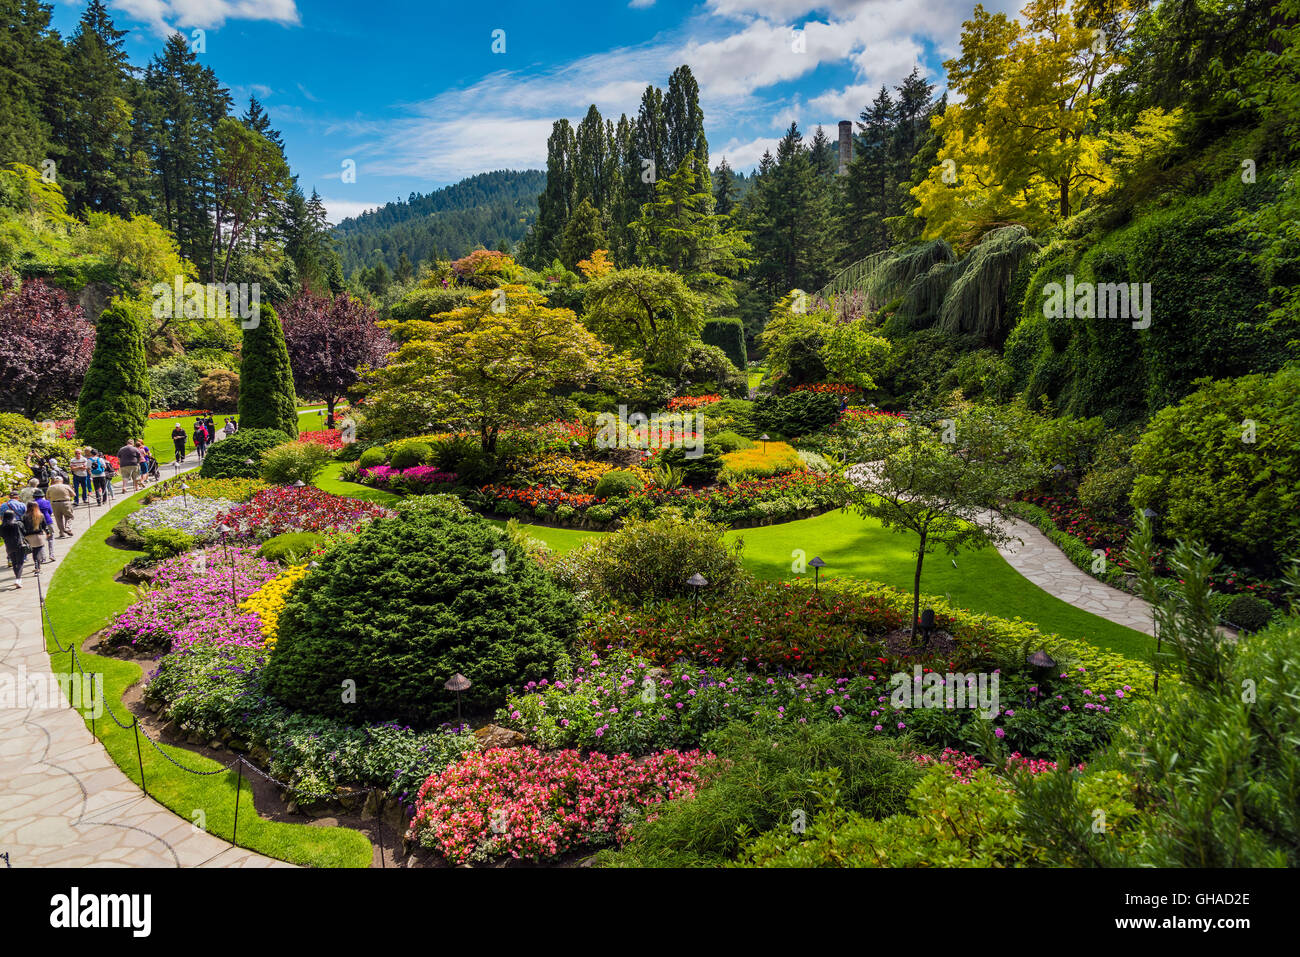 Butchart gardens victoria british columbia canada stock photo butchart gardens victoria british columbia canada thecheapjerseys Image collections